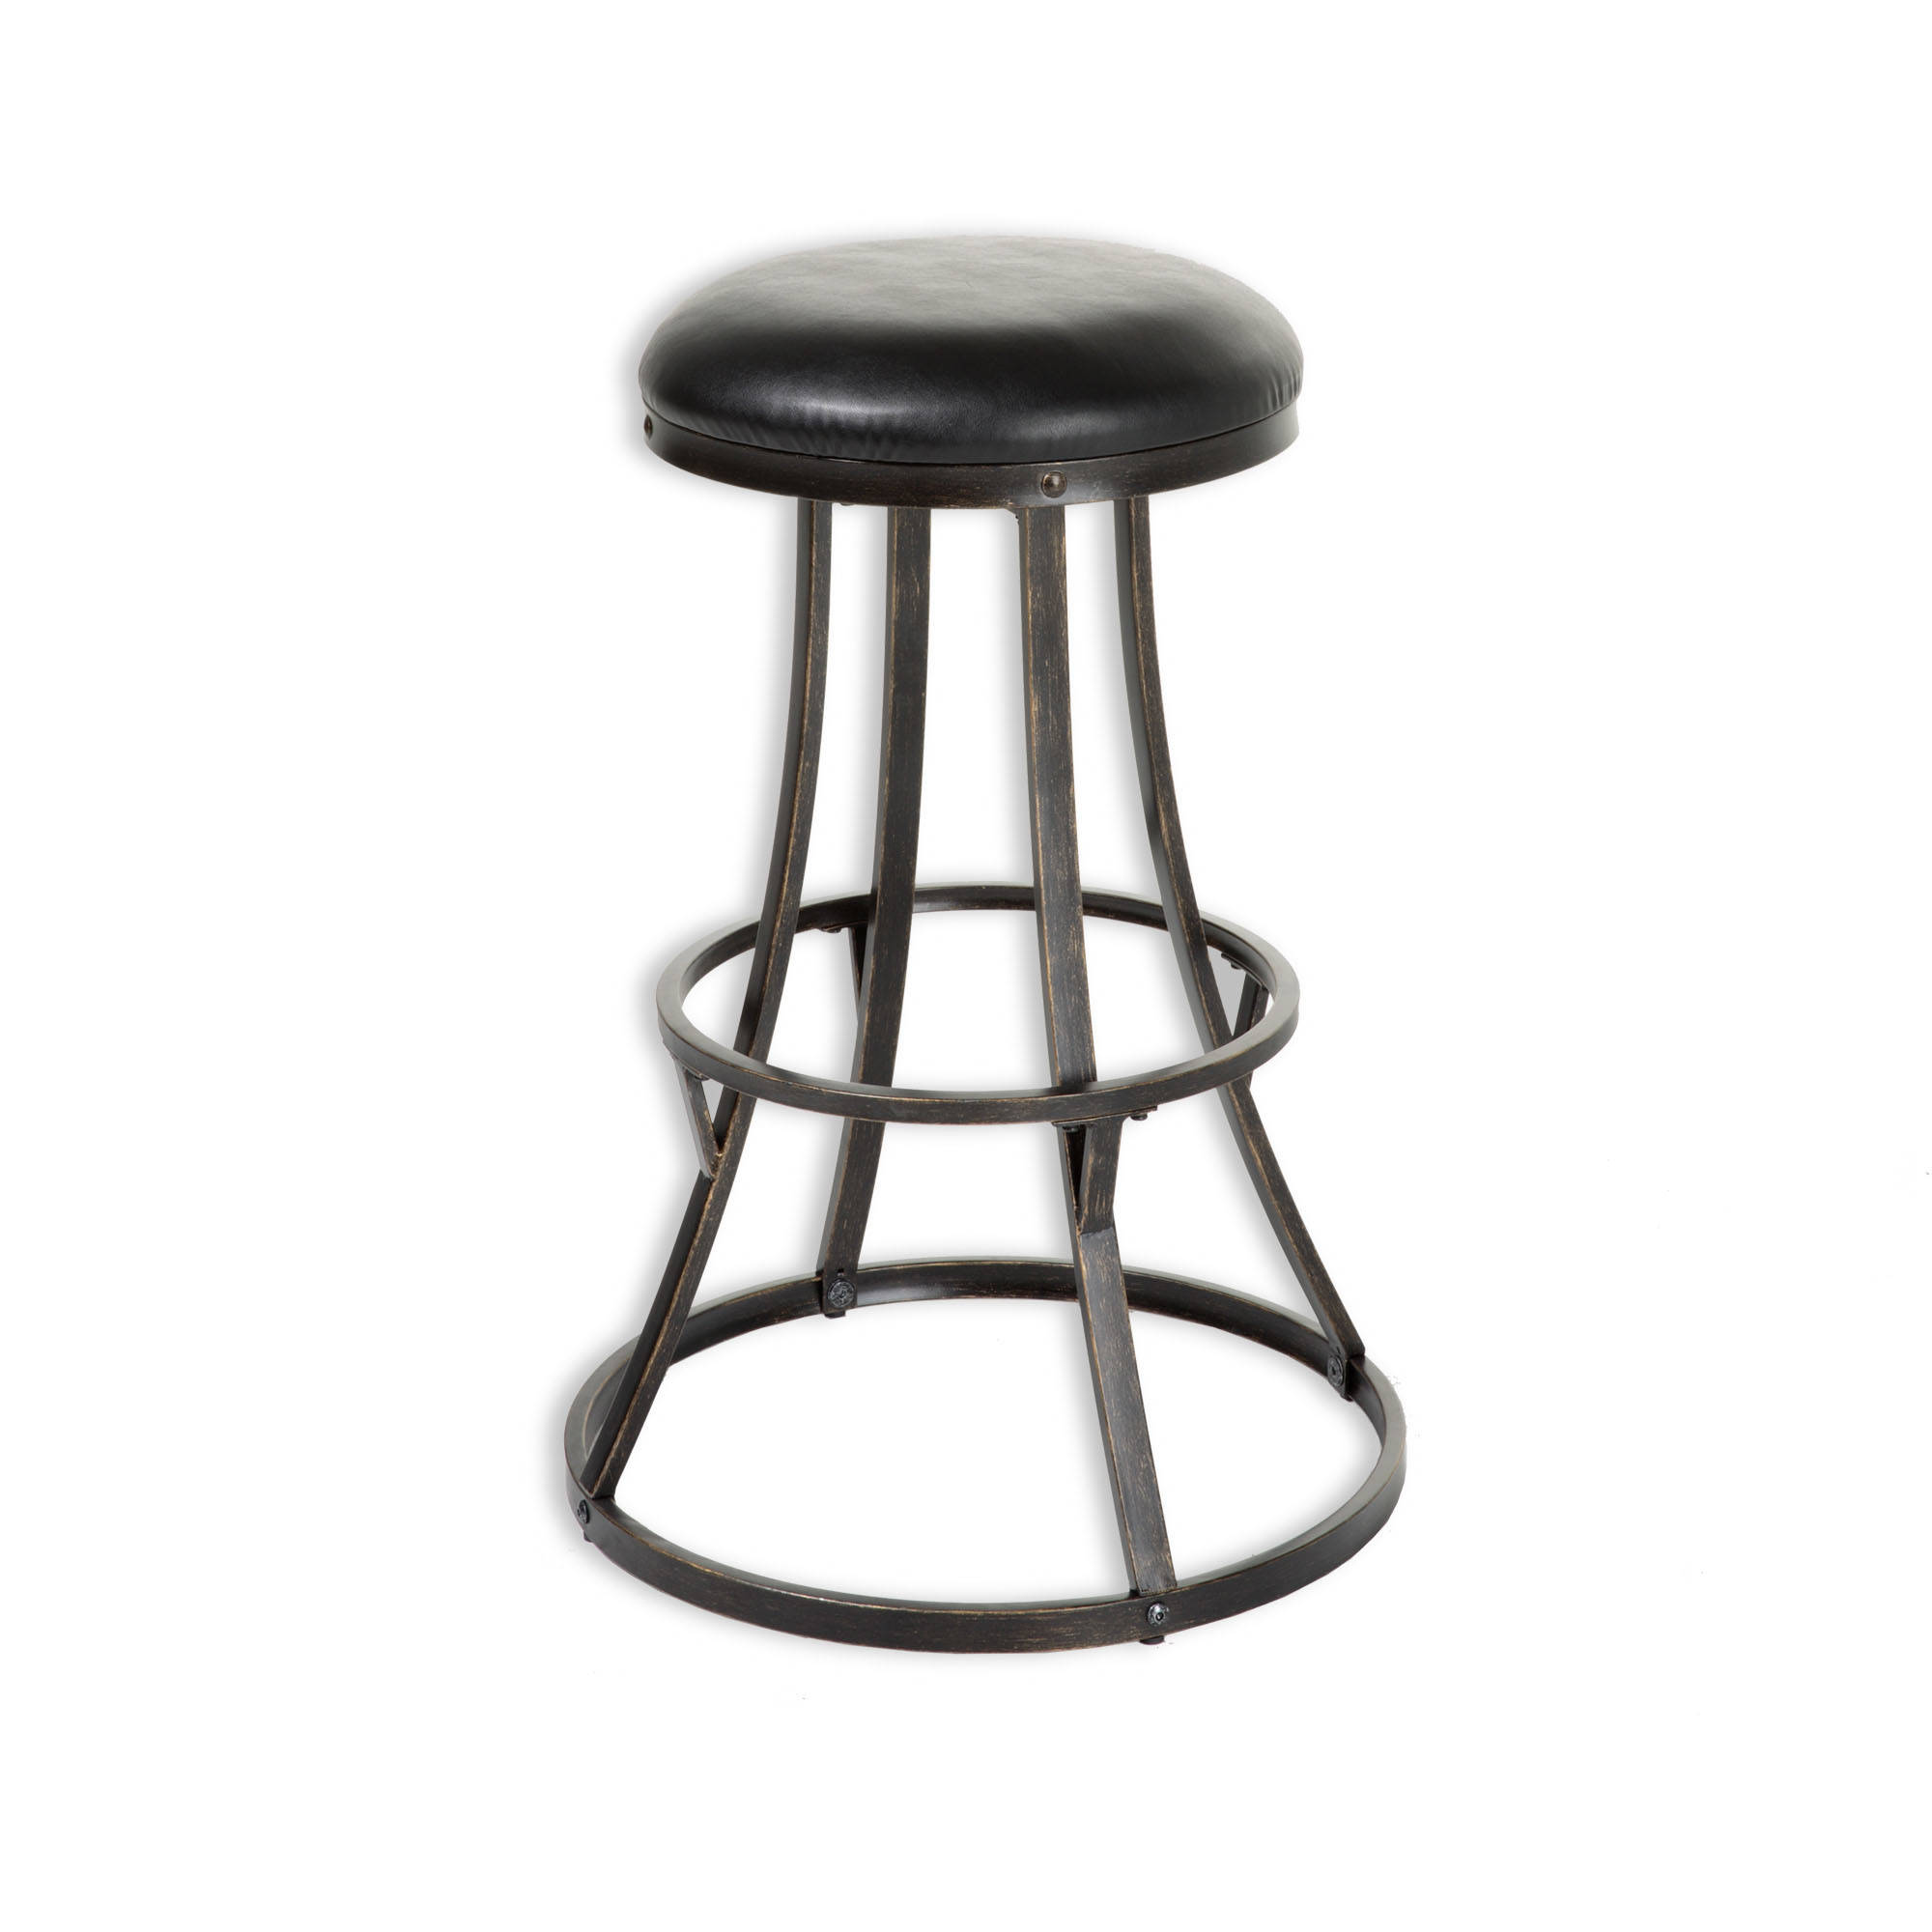 Leggett And Platt Dover Black 26 Inch Bar Stool The Classy Home